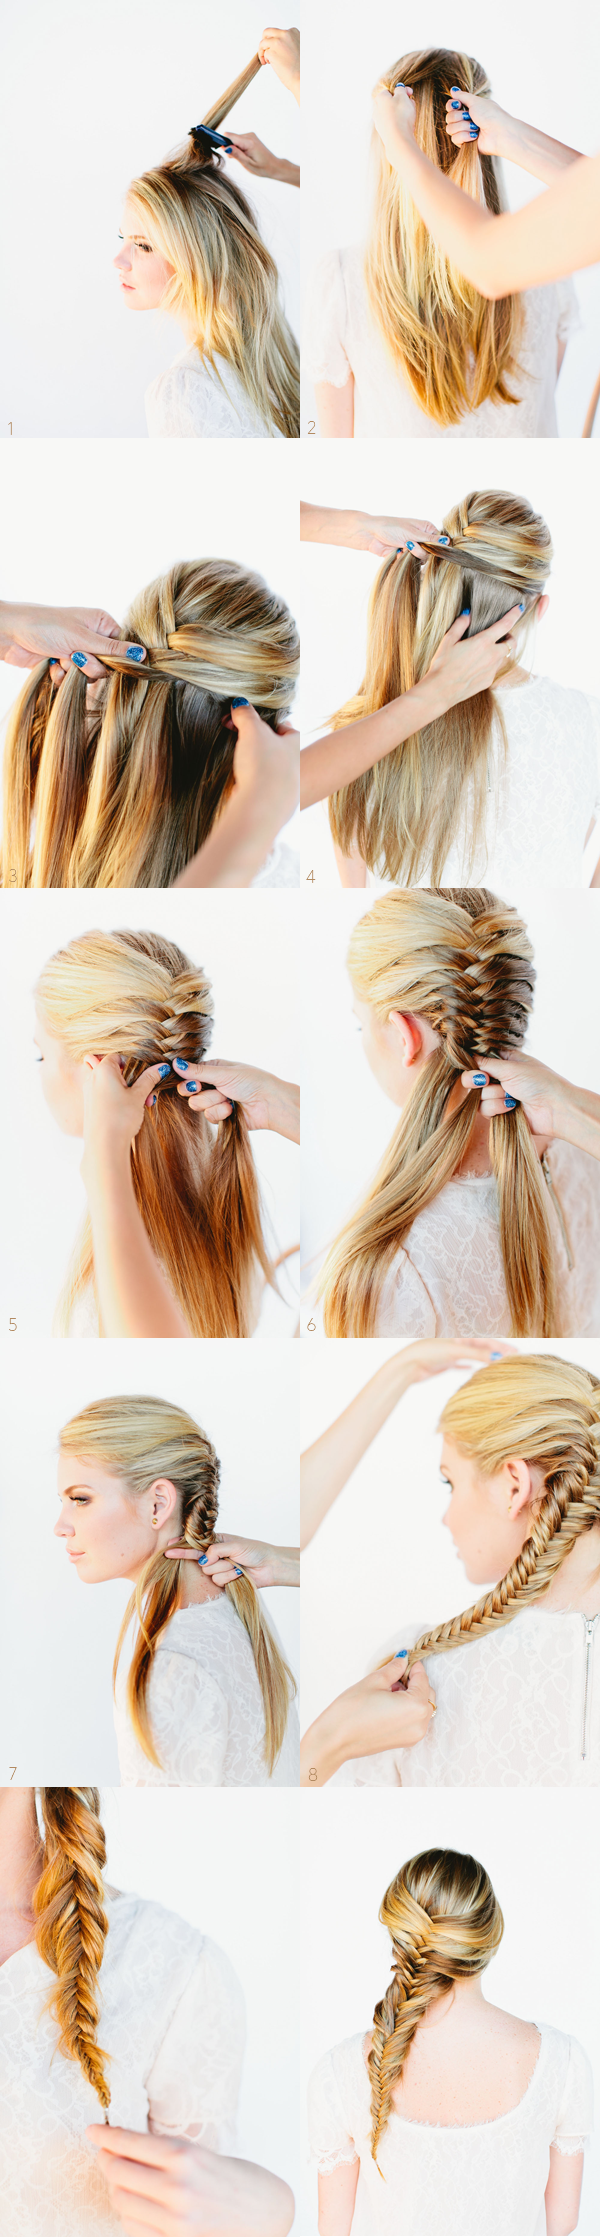 Pleasant 12 Romantic Braided Hairstyles With Useful Tutorials Pretty Designs Hairstyles For Women Draintrainus